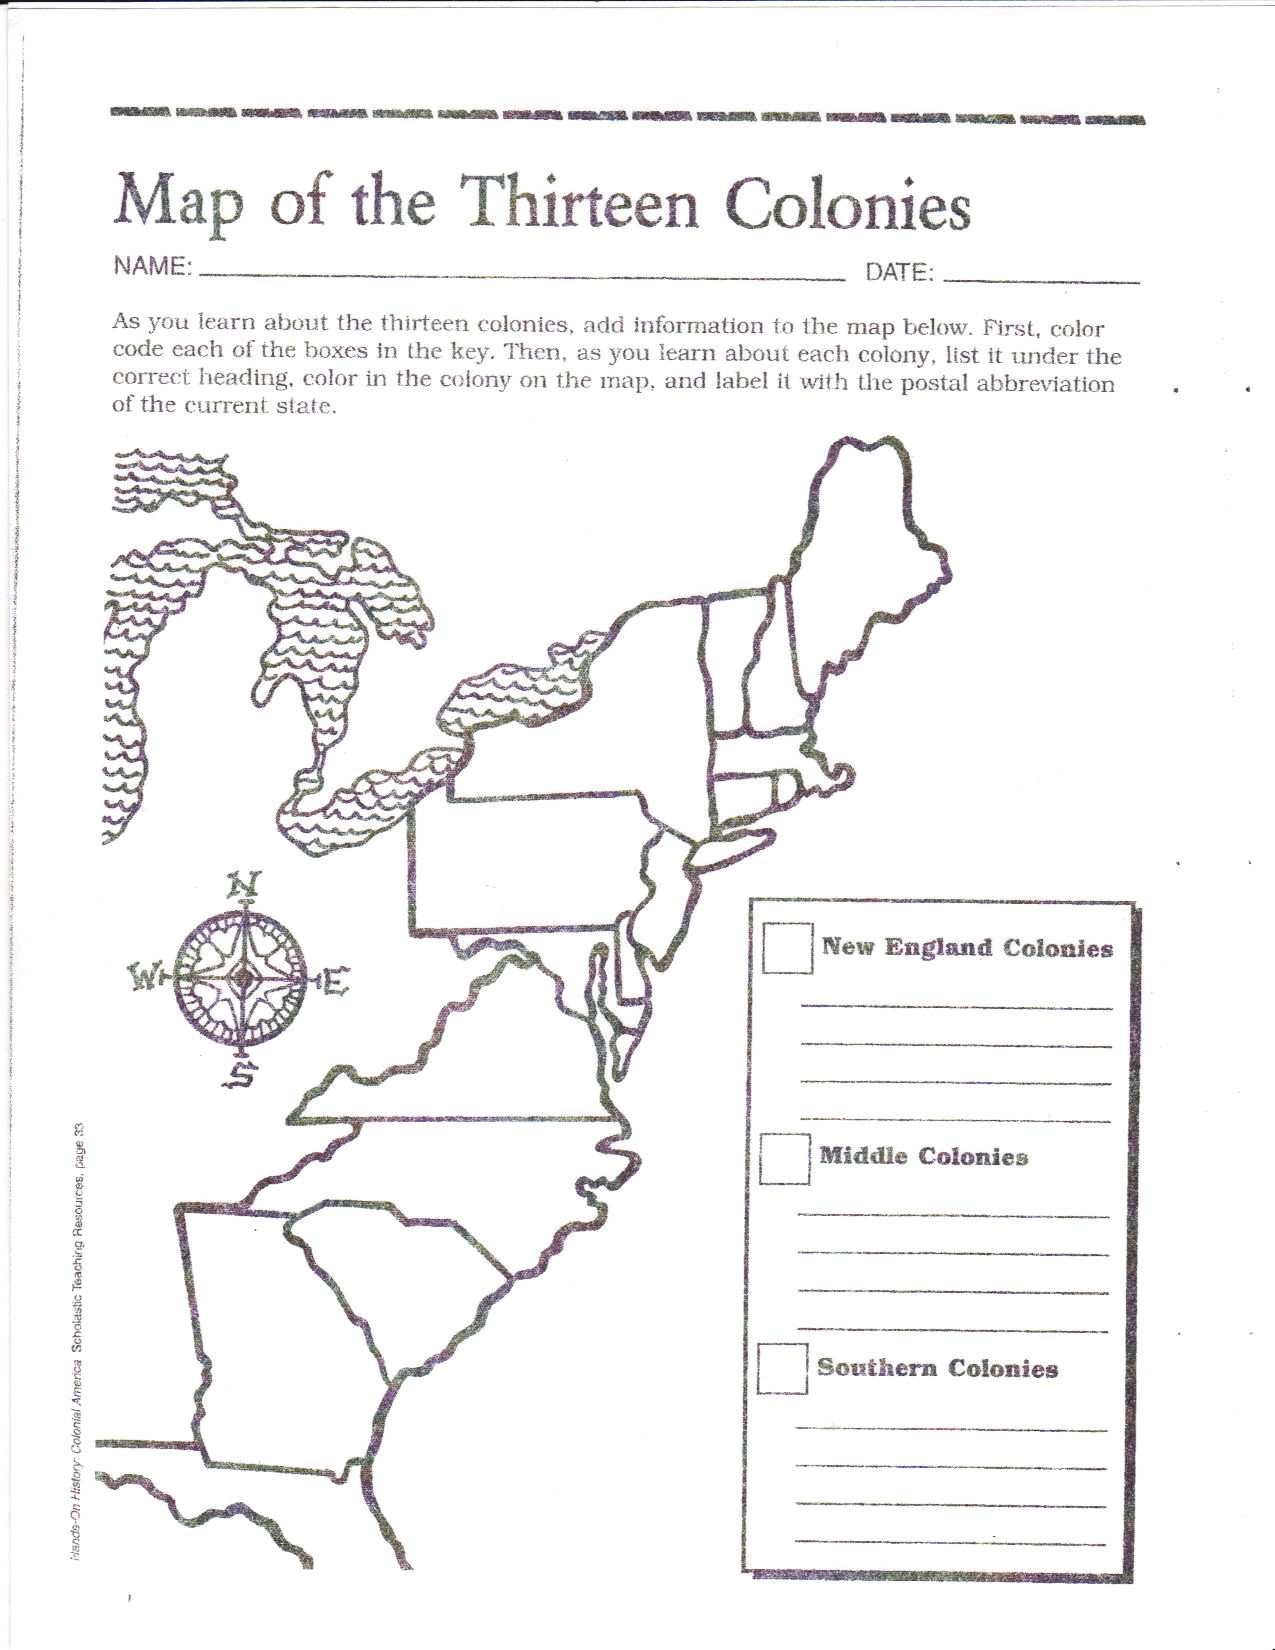 Printable Outline Map 13 Colonies Elegant Category Maps 134